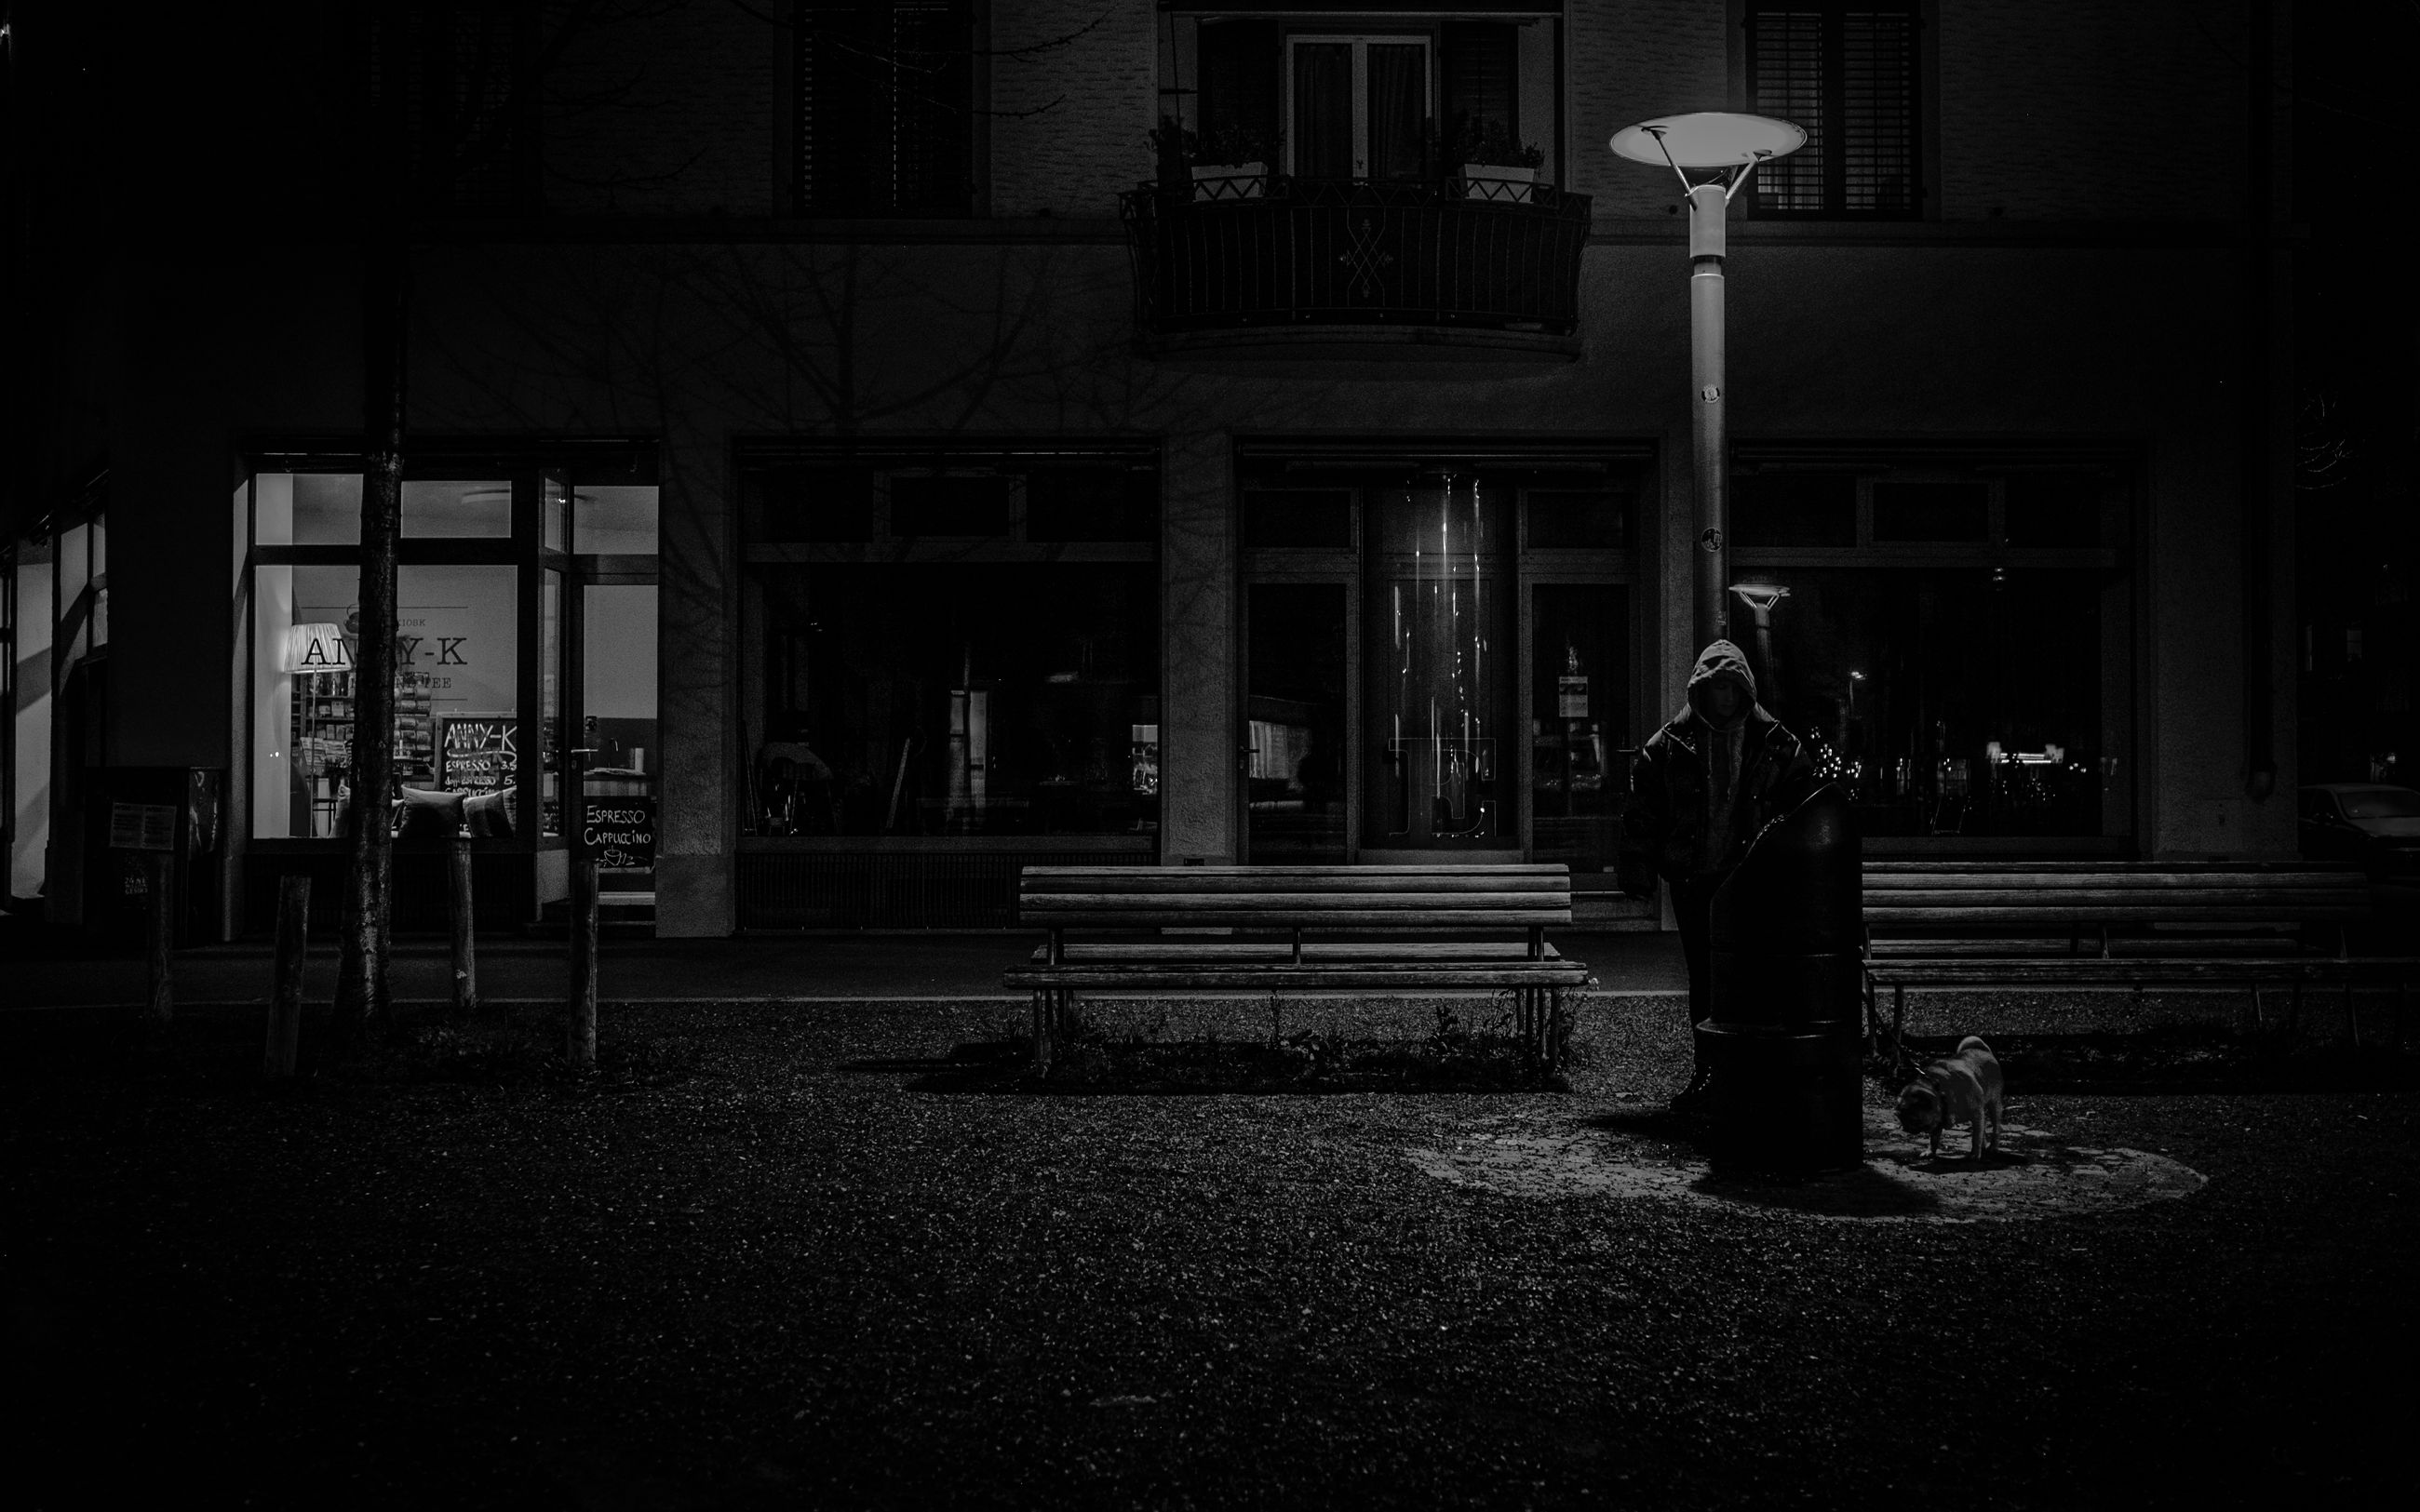 darkness, night, black, light, lighting, architecture, black and white, monochrome, white, built structure, road, street, monochrome photography, building exterior, city, street light, one person, midnight, men, adult, full length, evening, outdoors